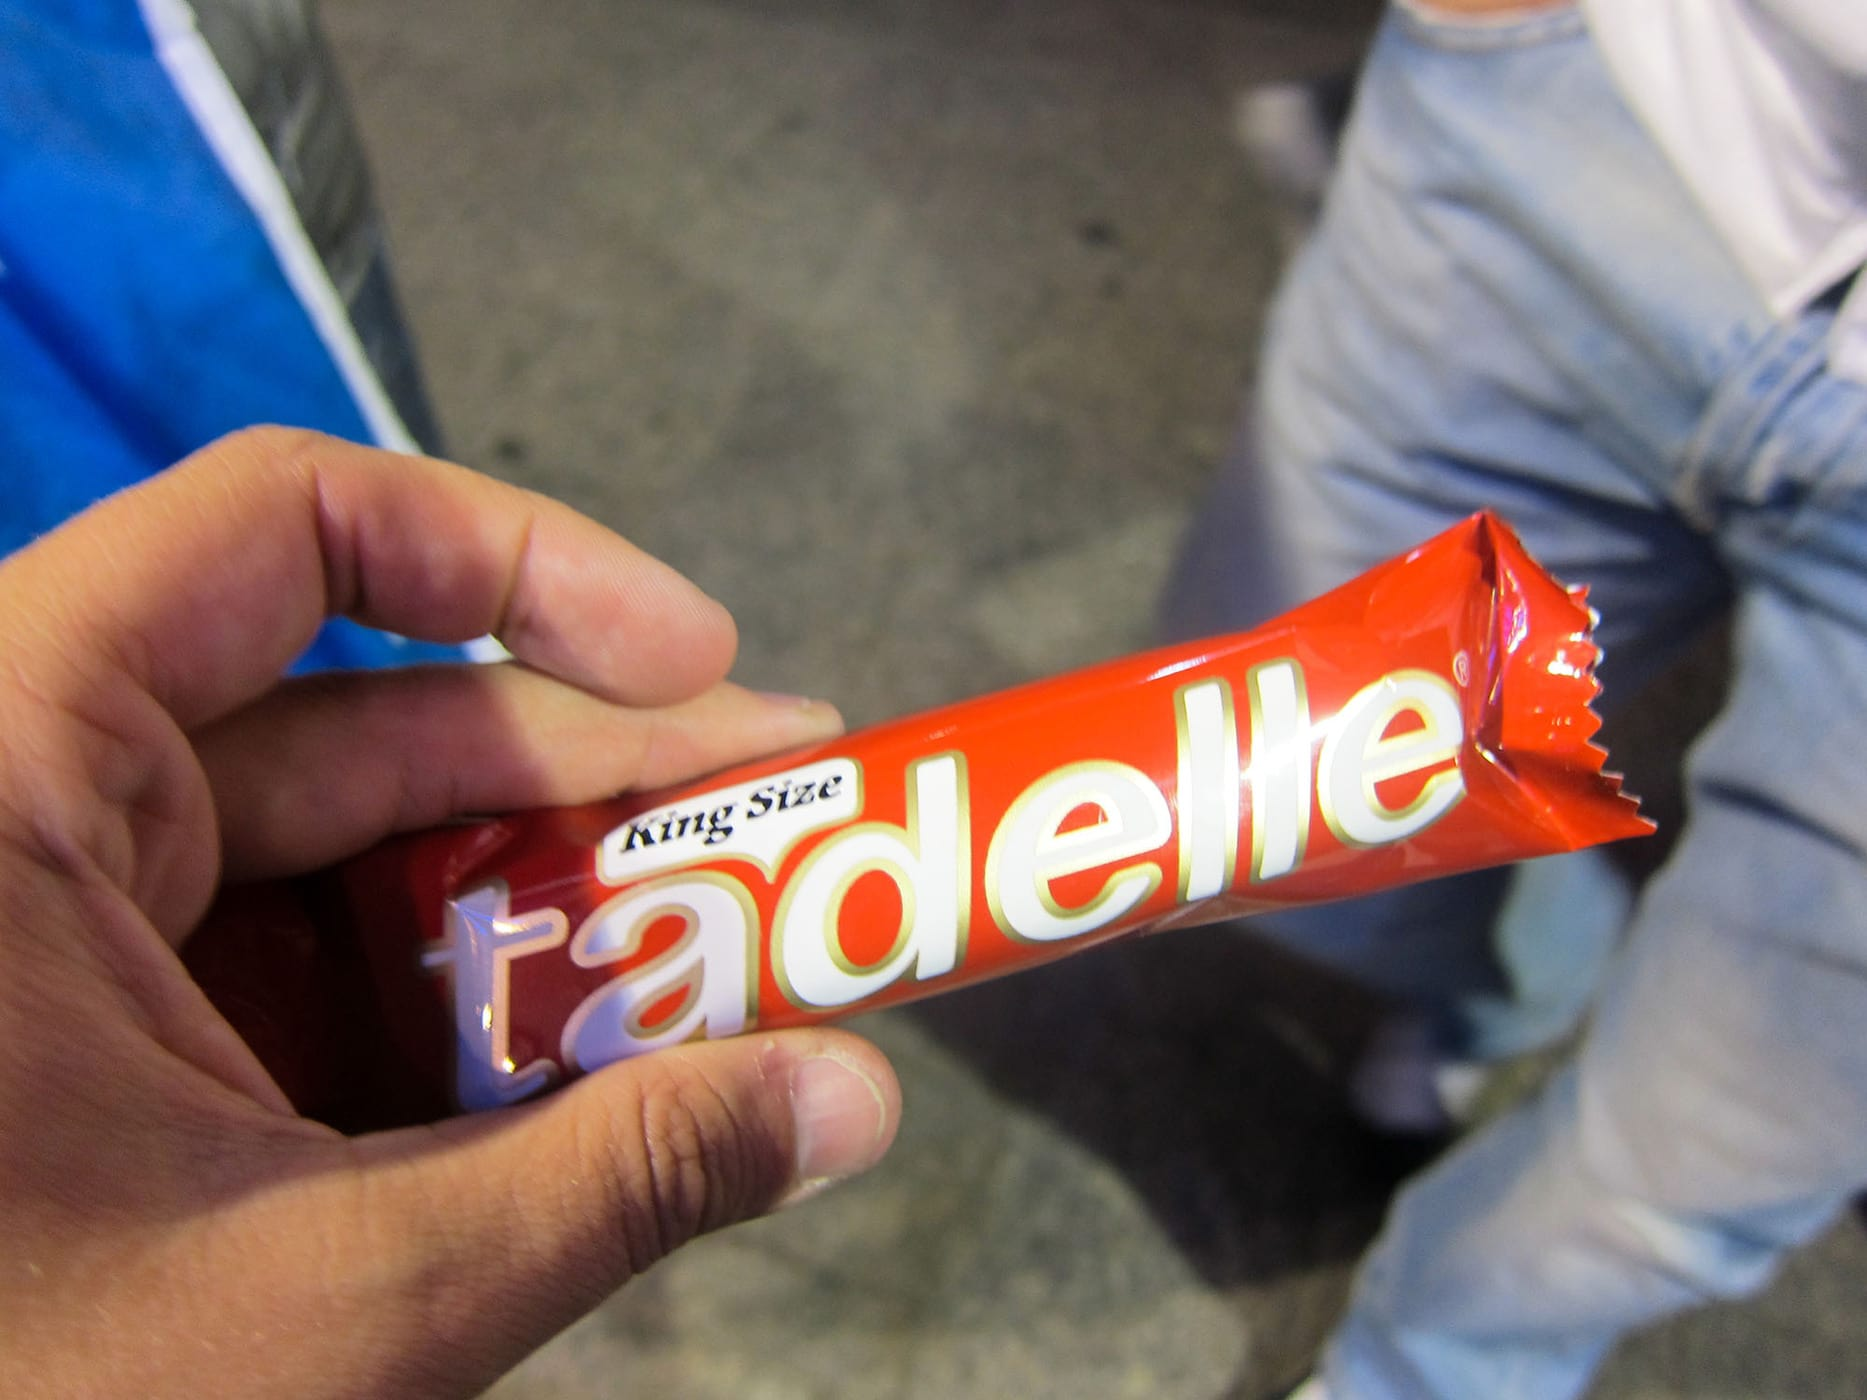 Tadelle candy bar in Istanbul, Turkey